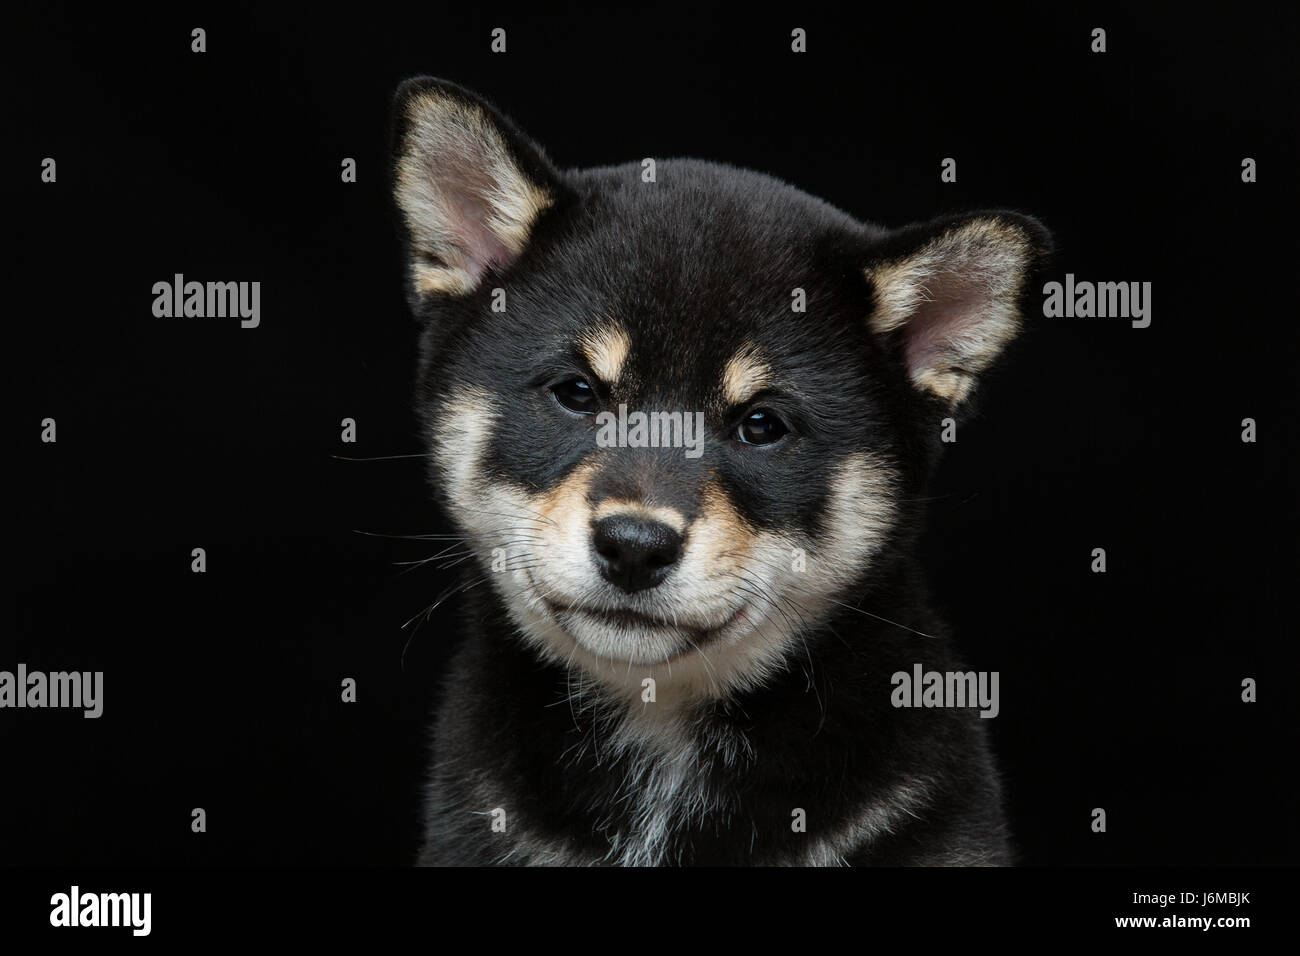 Beautiful black japanese shiba inu puppy dog sitting over black background. Copy space. - Stock Image